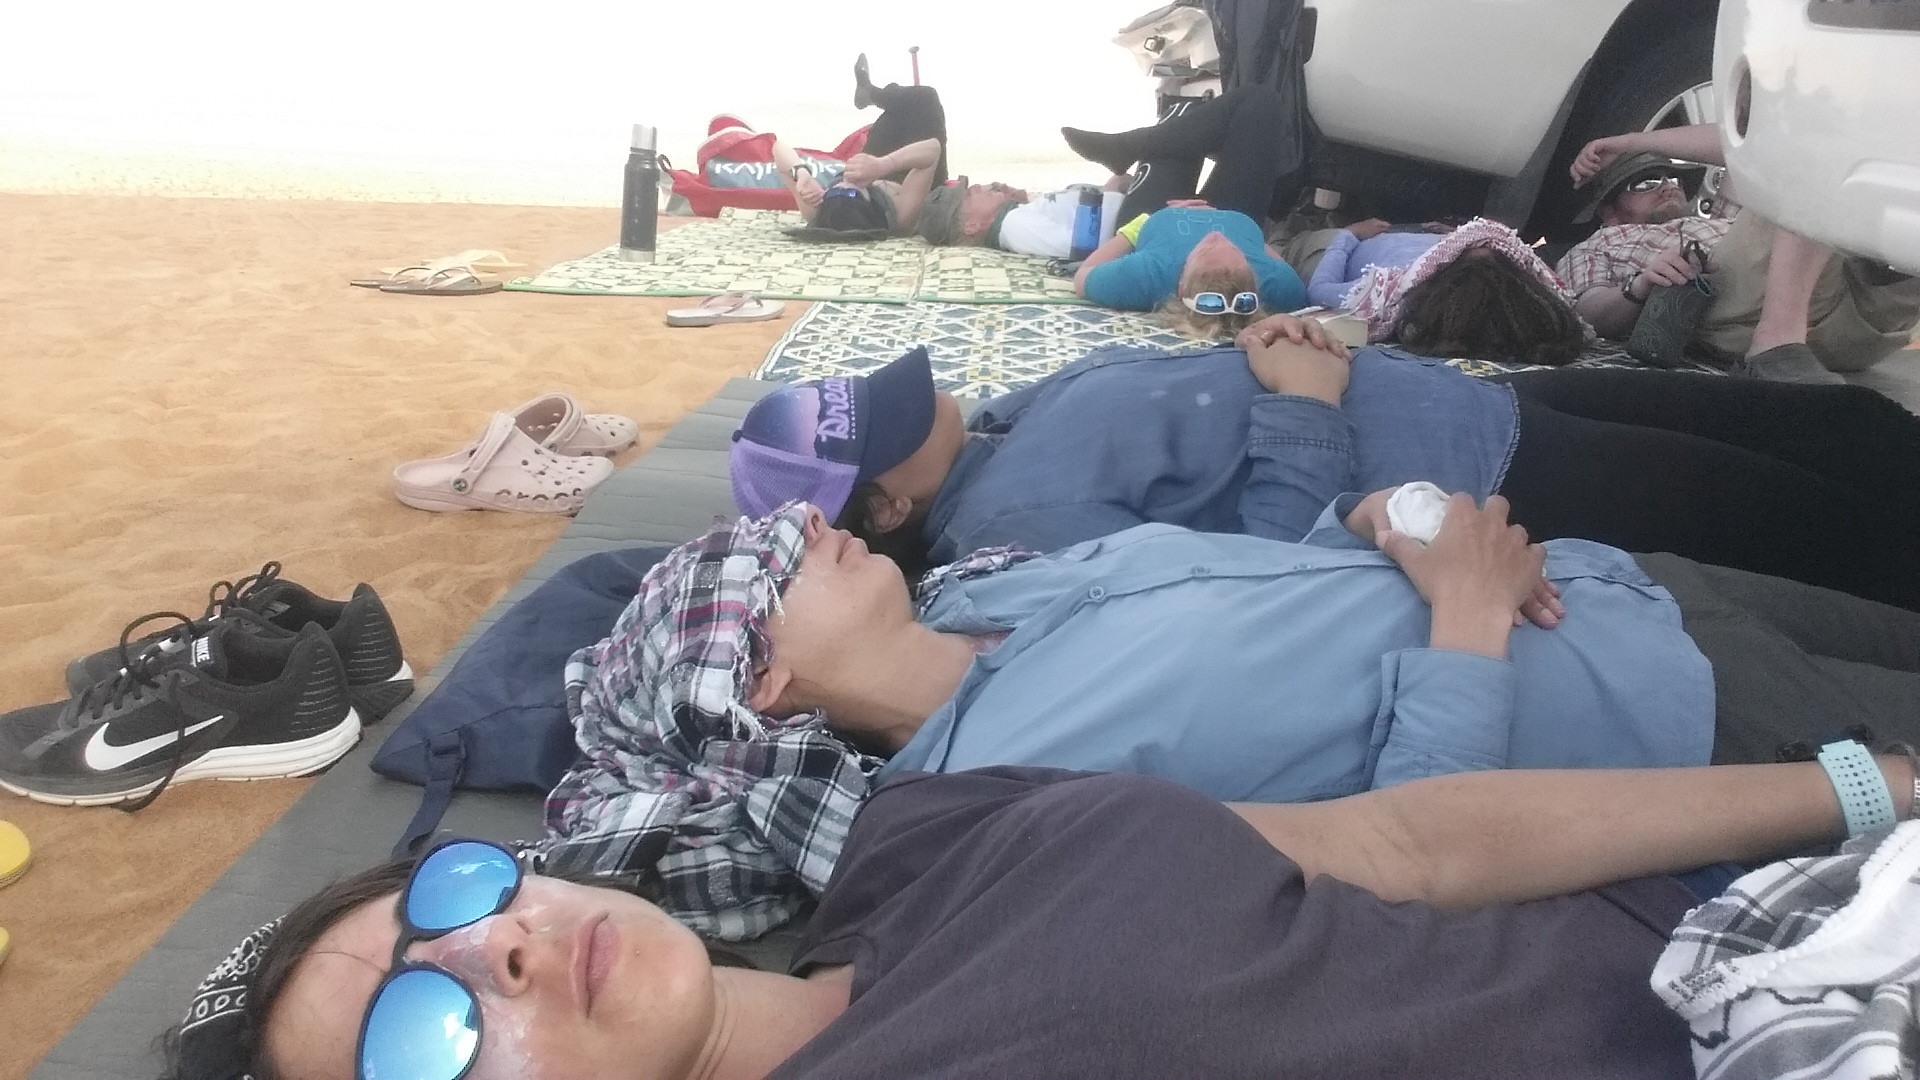 Not the scene of some horrific traffic accident but the team's siesta in the shade of the support vehicles.